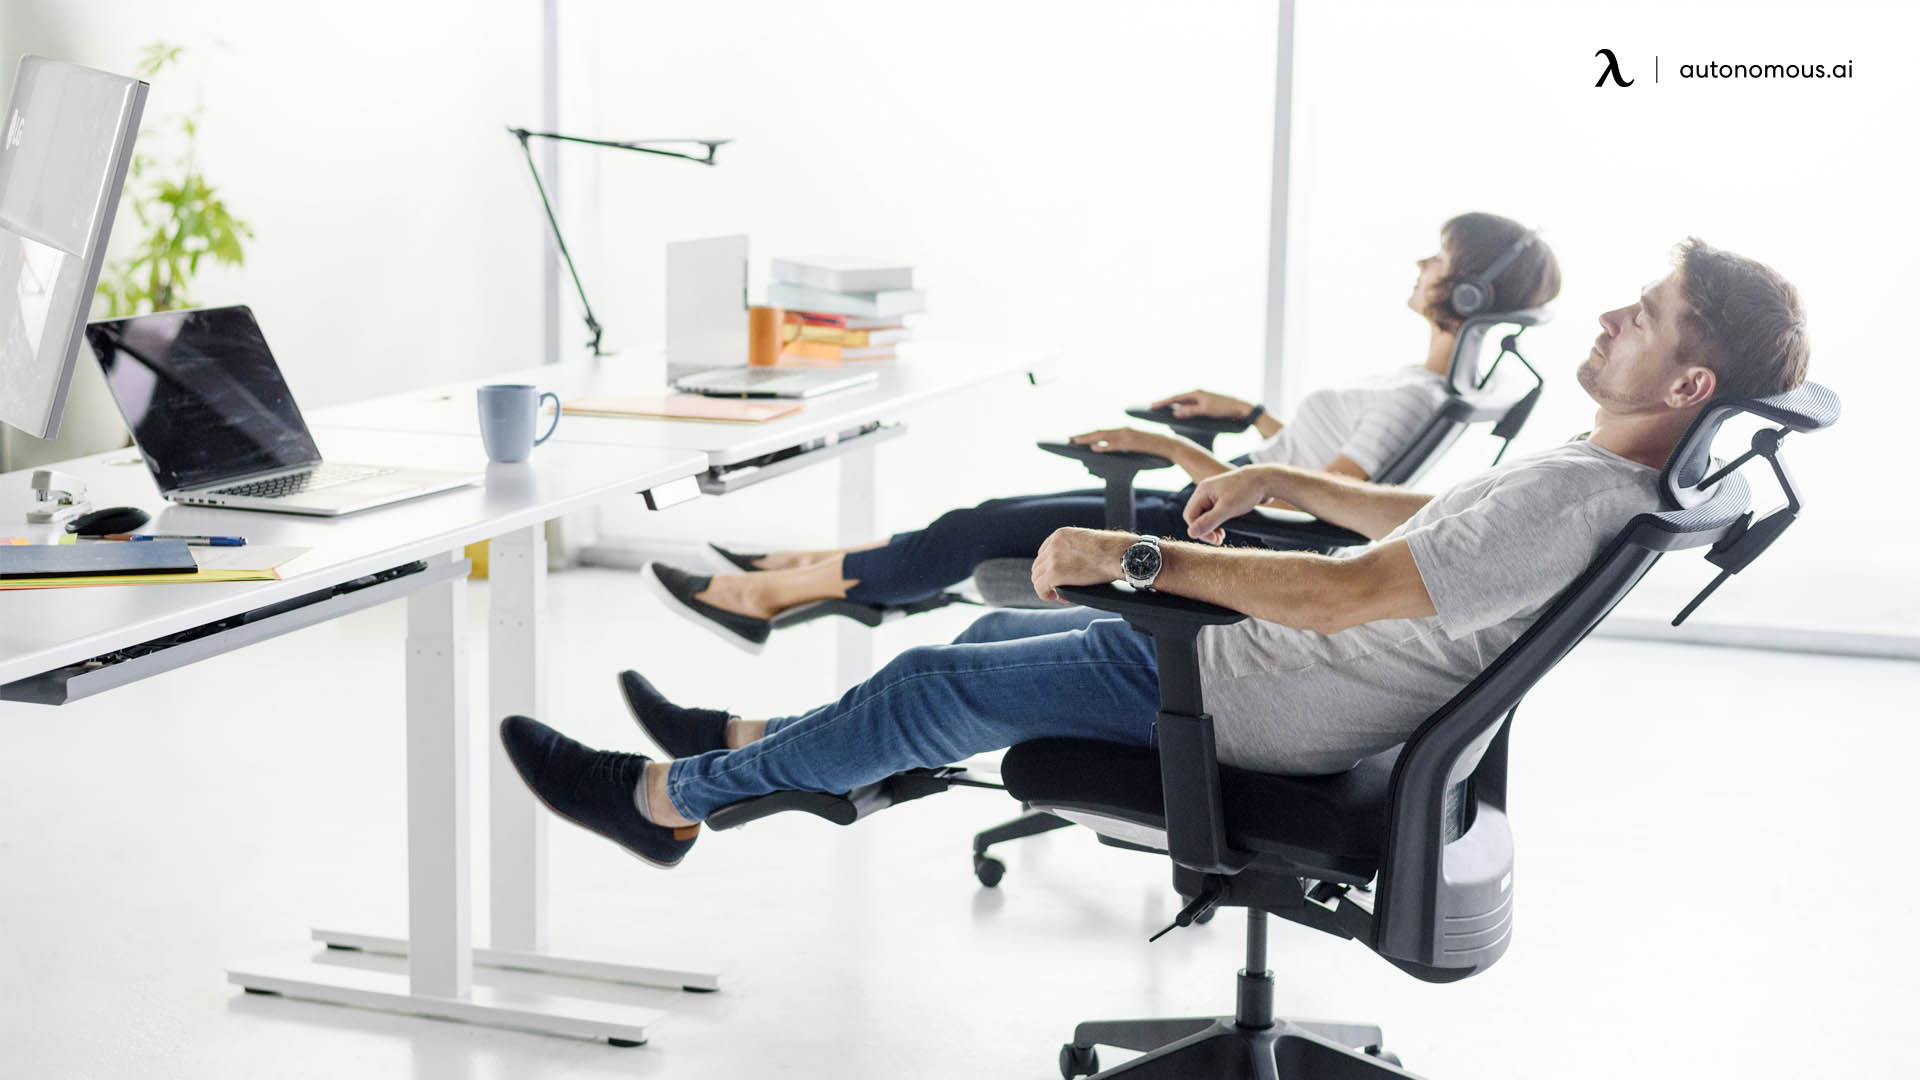 What Are The Benefits Of A Flexible Ergonomic Office Chair?